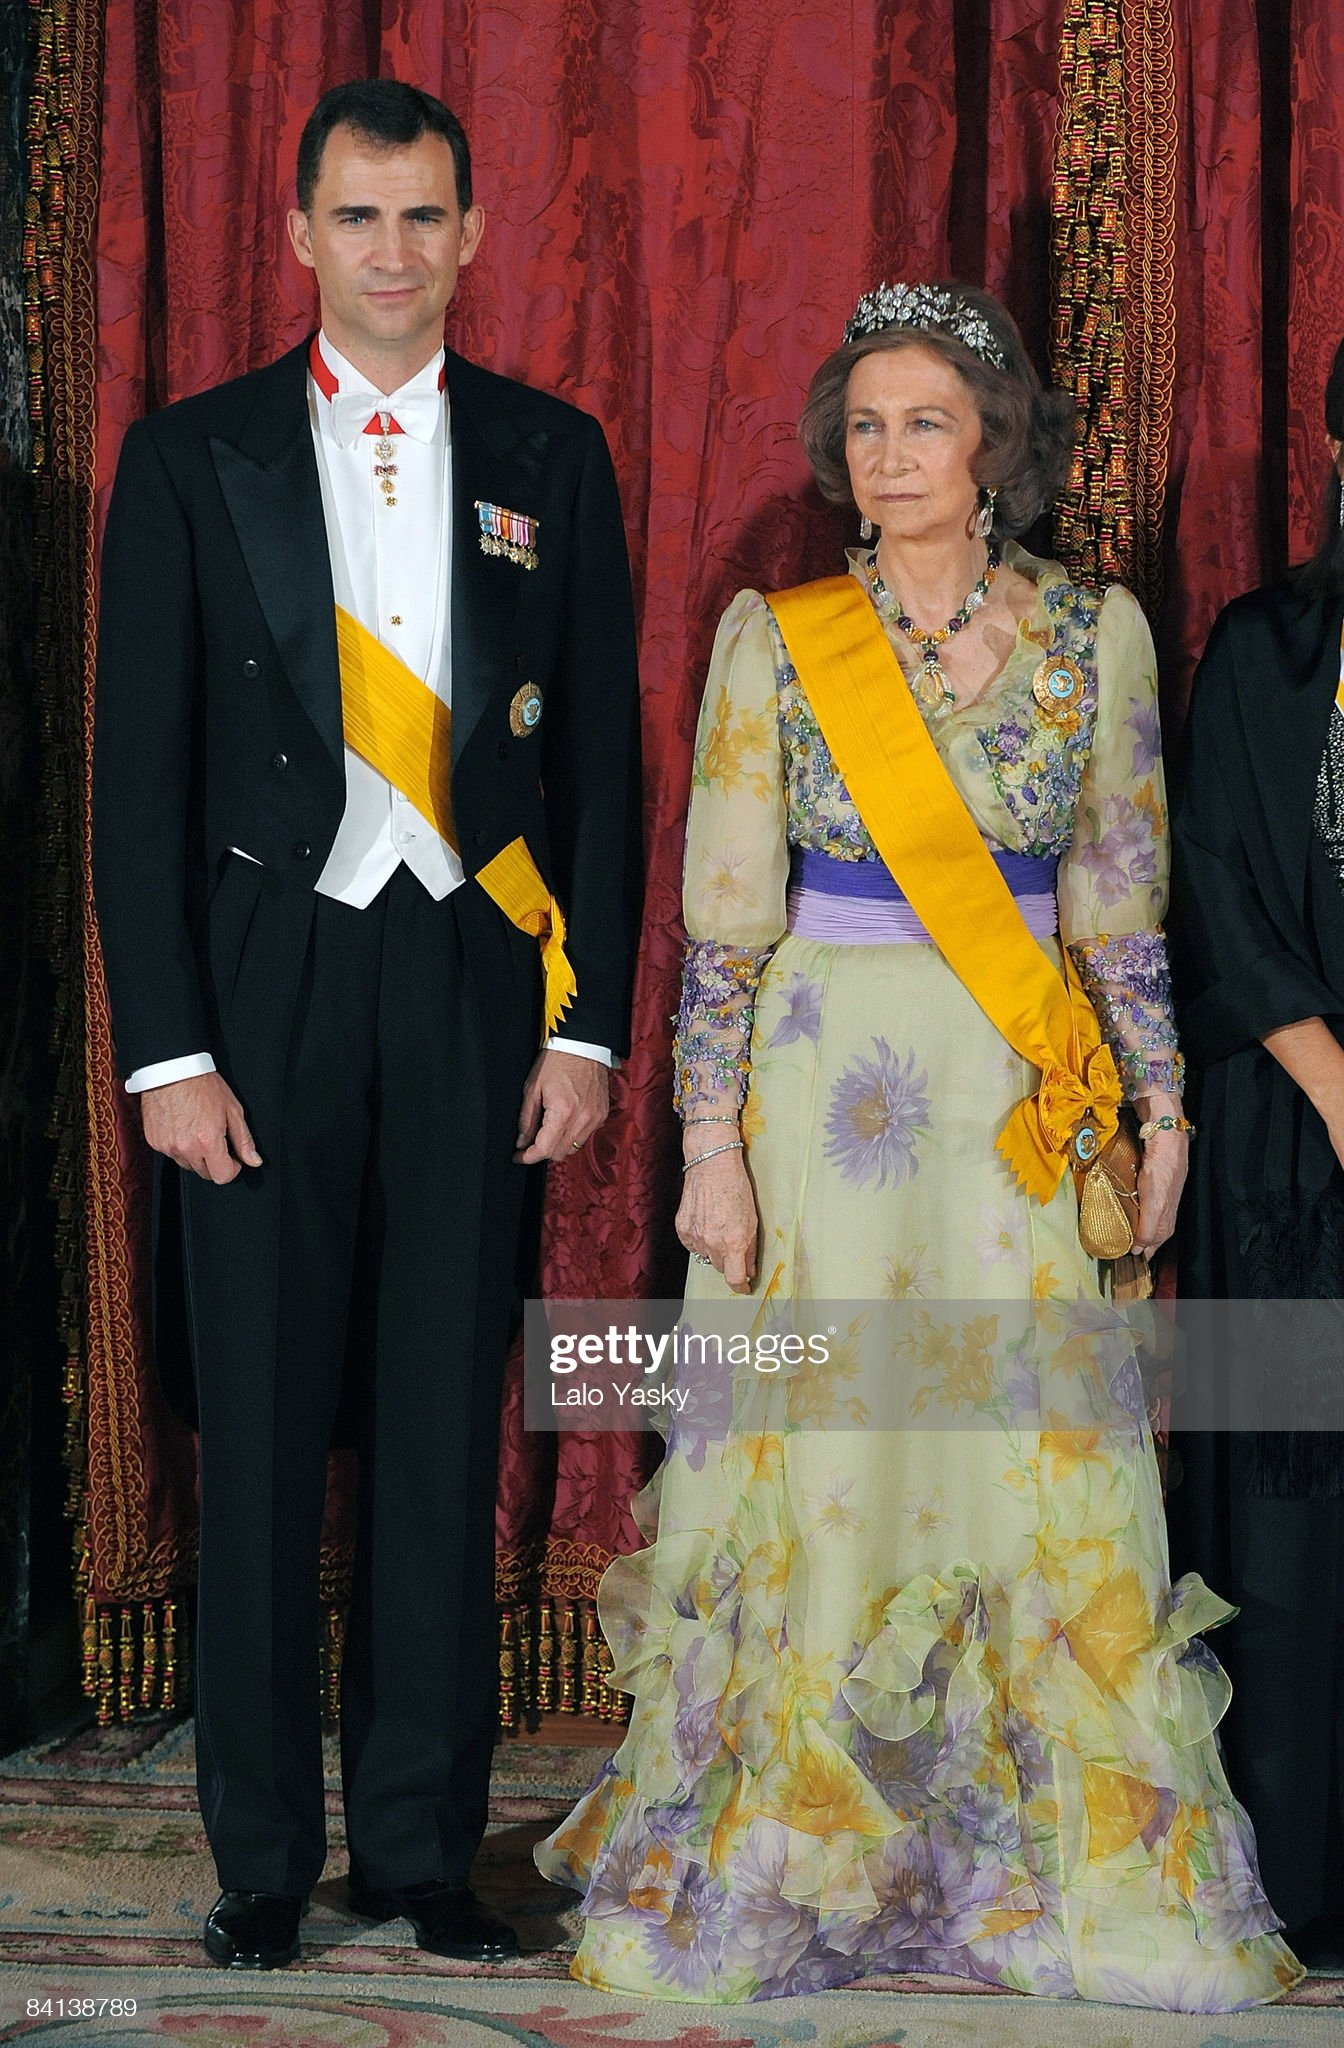 Spanish Royals Host Gala Dinner Honouring Mexican President : News Photo